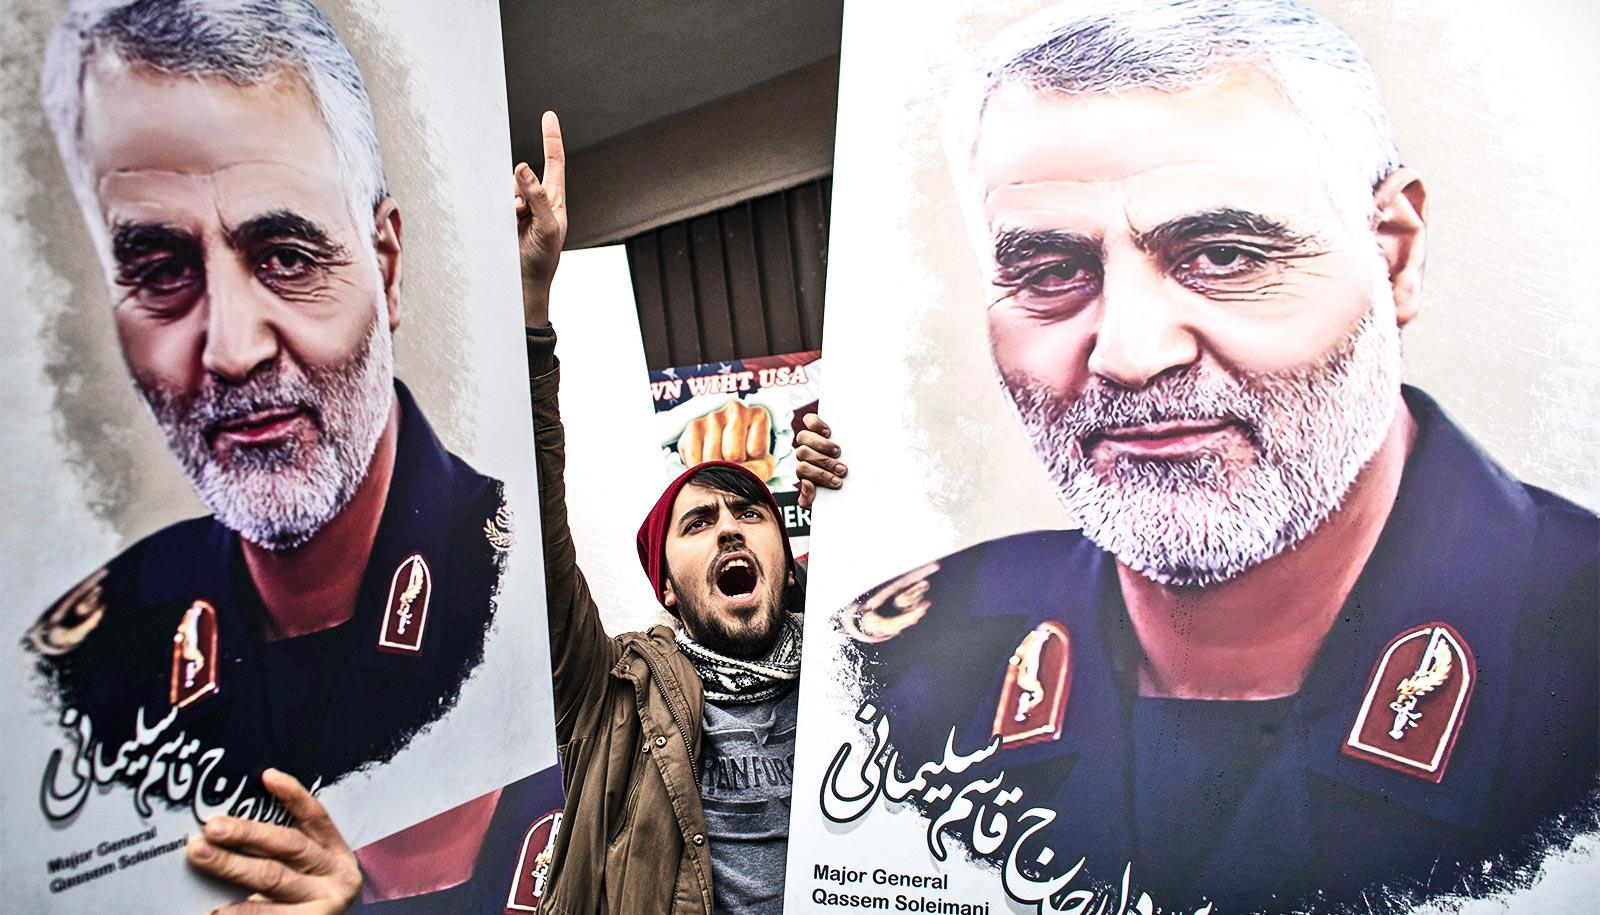 Protestors hold up Soleimani's portrait on large posterboards, with one young man raising his hand and shouting